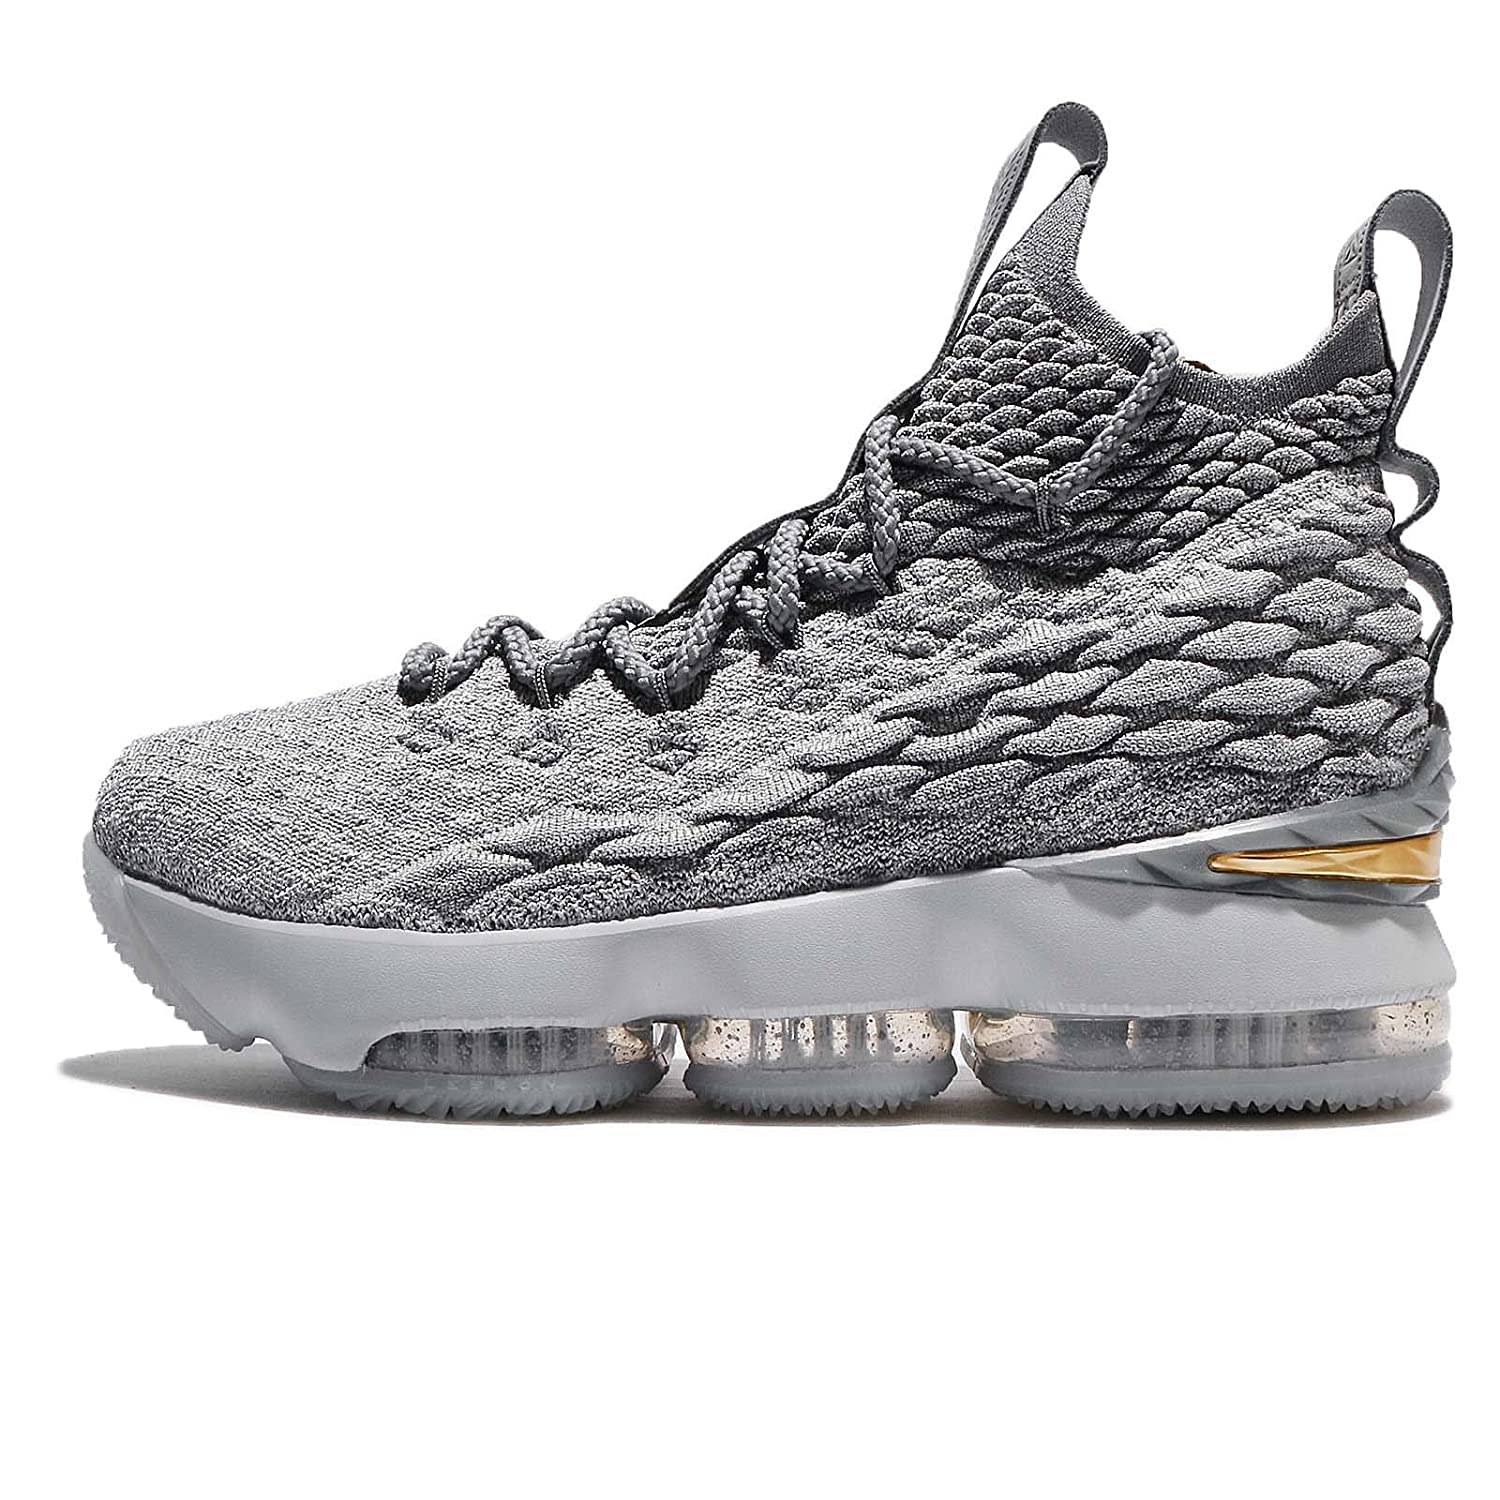 18d7a66c27fb Amazon.com  Nike Youth Lebron 15 Boys Basketball Shoes Wolf Grey Cool  Grey Metallic Gold 922811-005 Size 6  Shoes